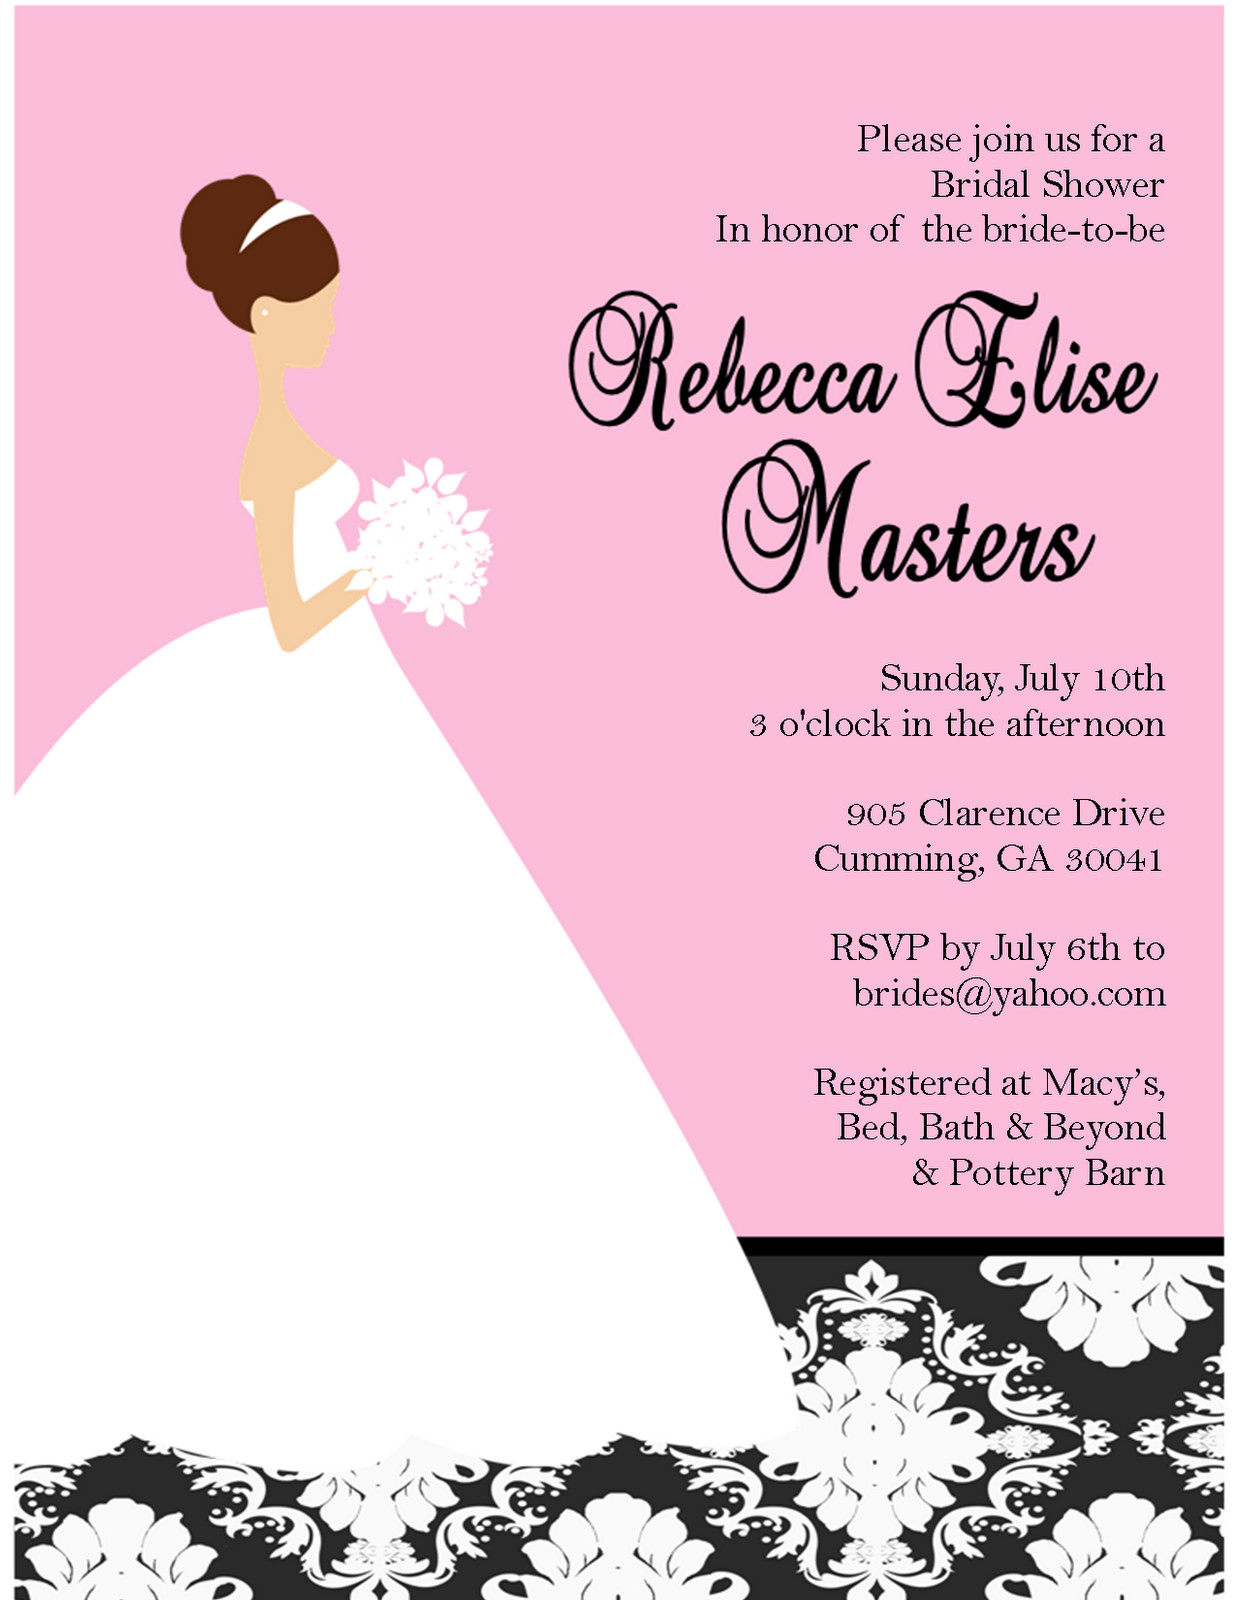 Sweet peach paperie archive bridal showers for Best bridal shower invitations